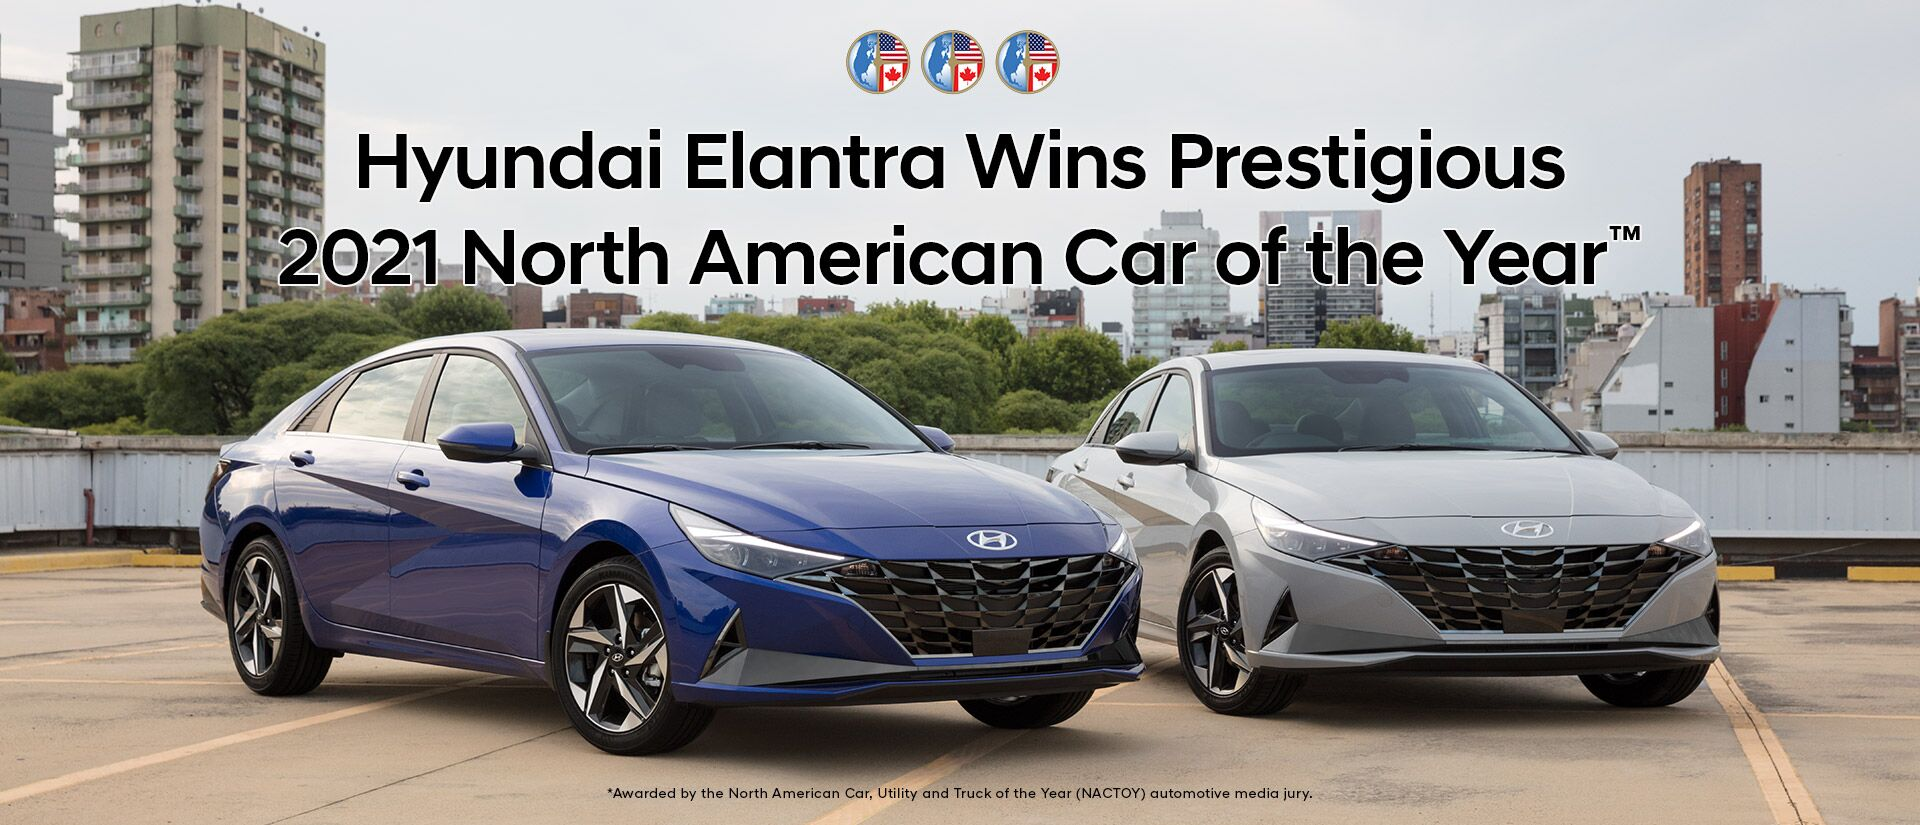 Elantra Car of the Year